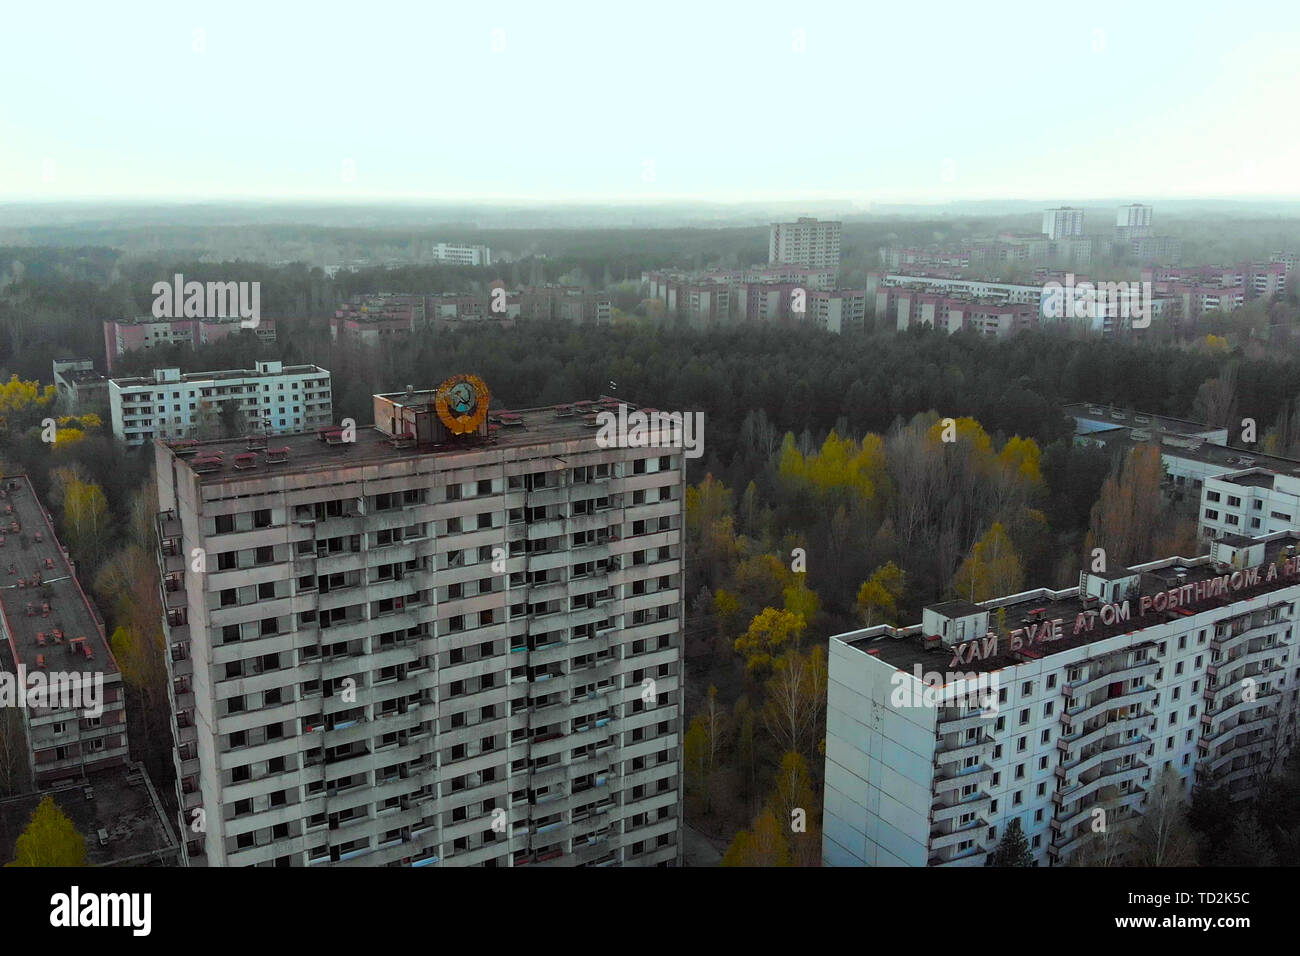 City of Pripyt near Chernobyl nuclear power plant - Stock Image